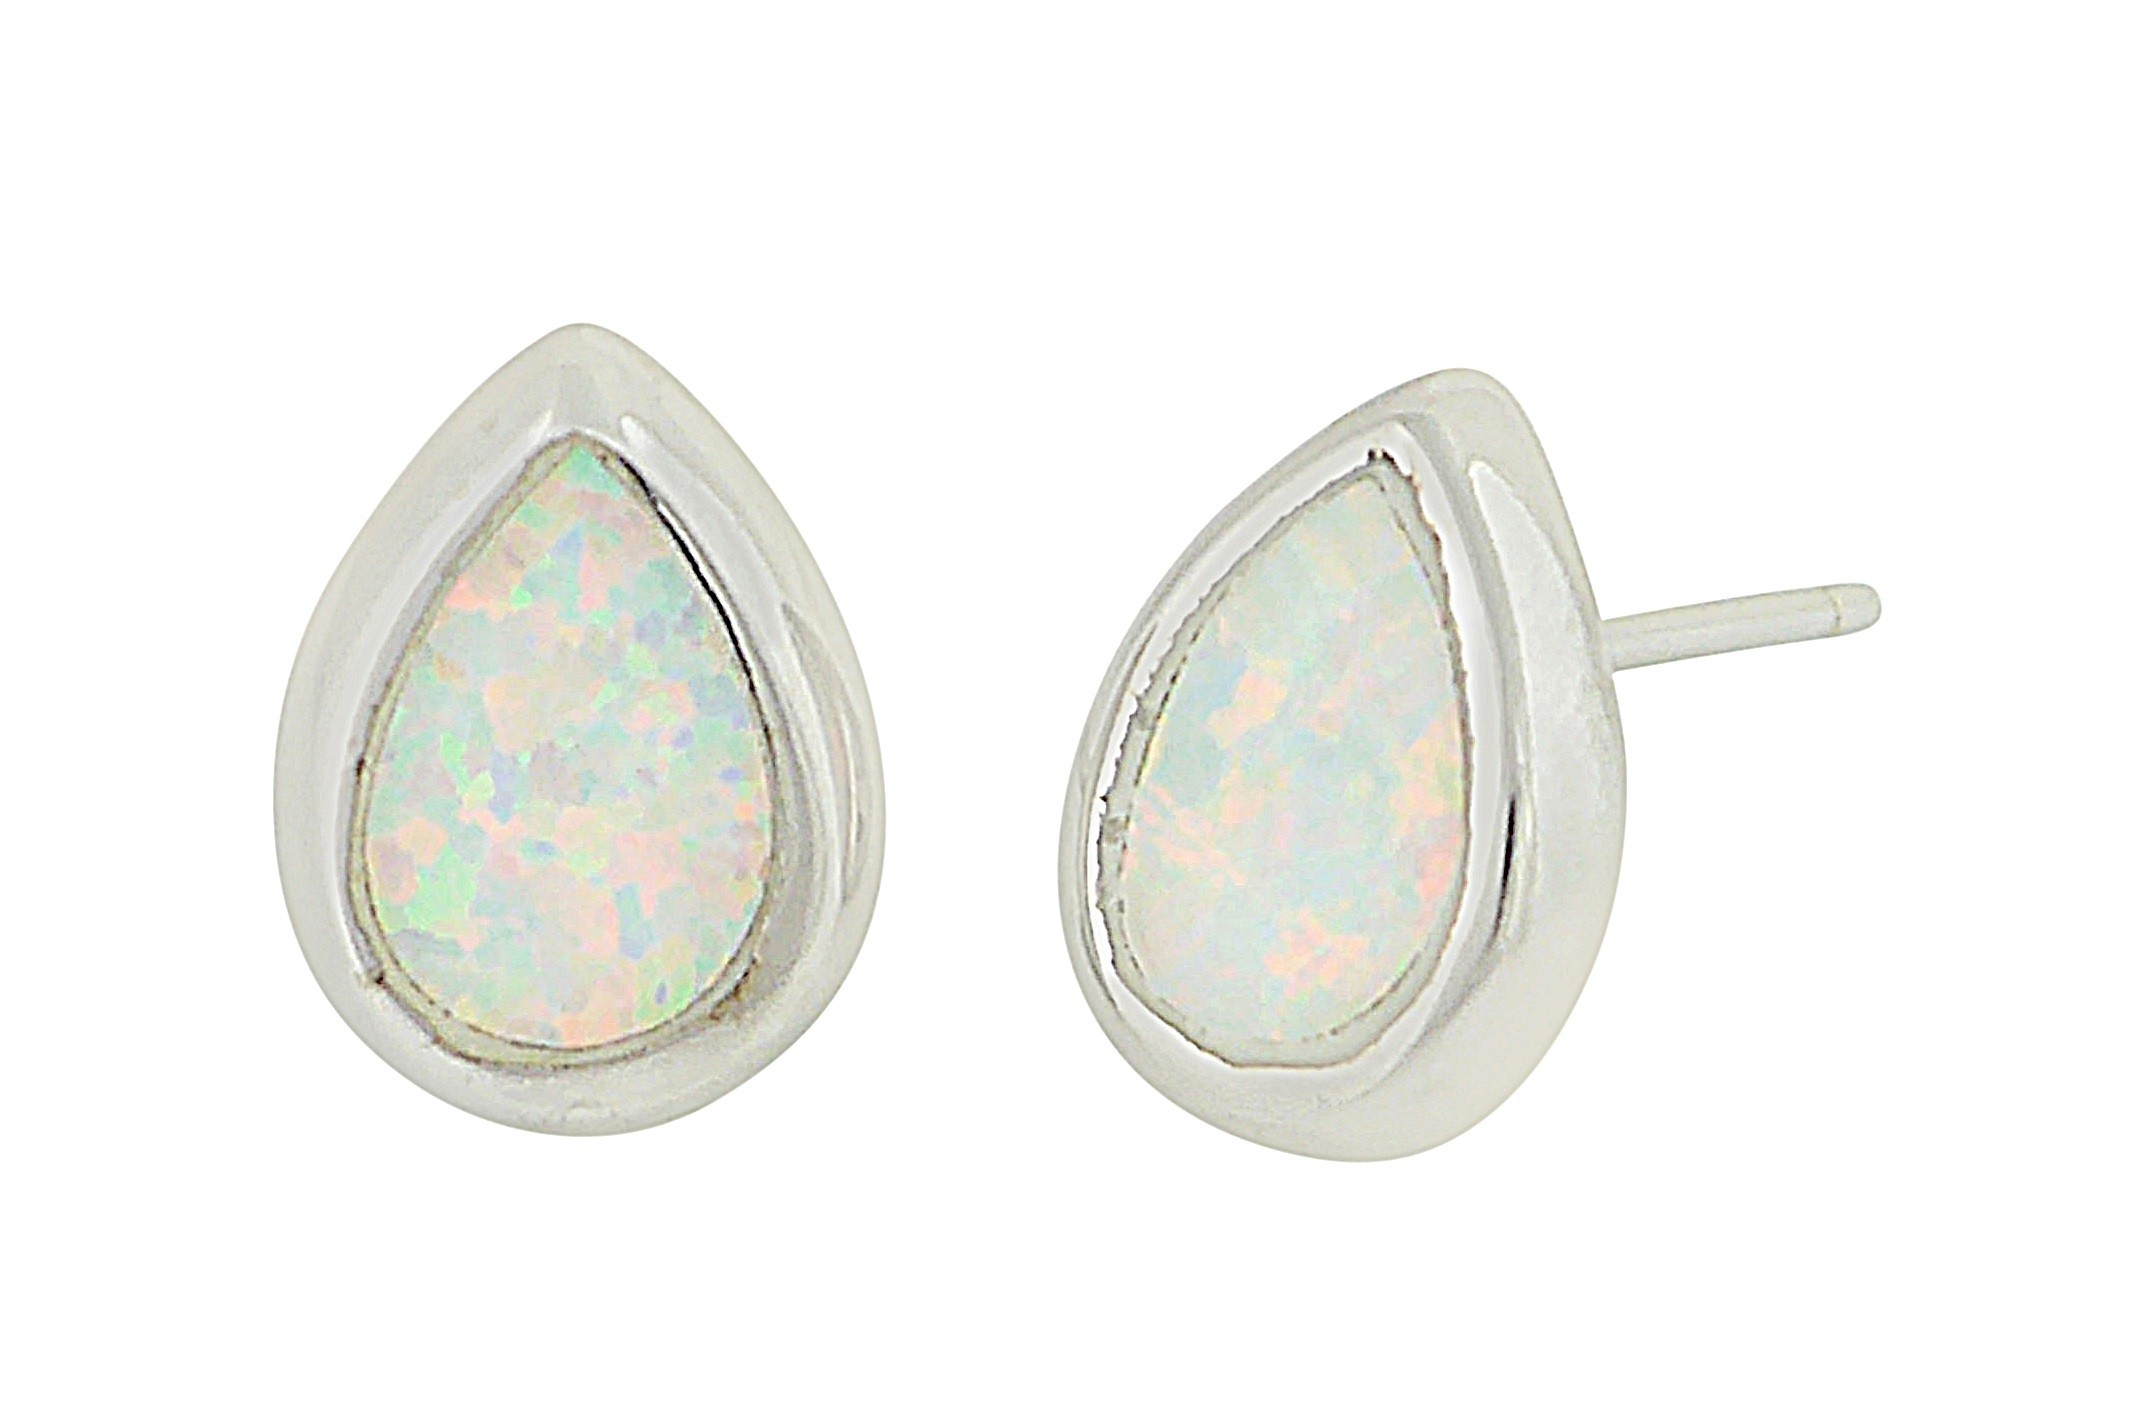 Small Teardrop Silver Earrings - White Opal | The Opal